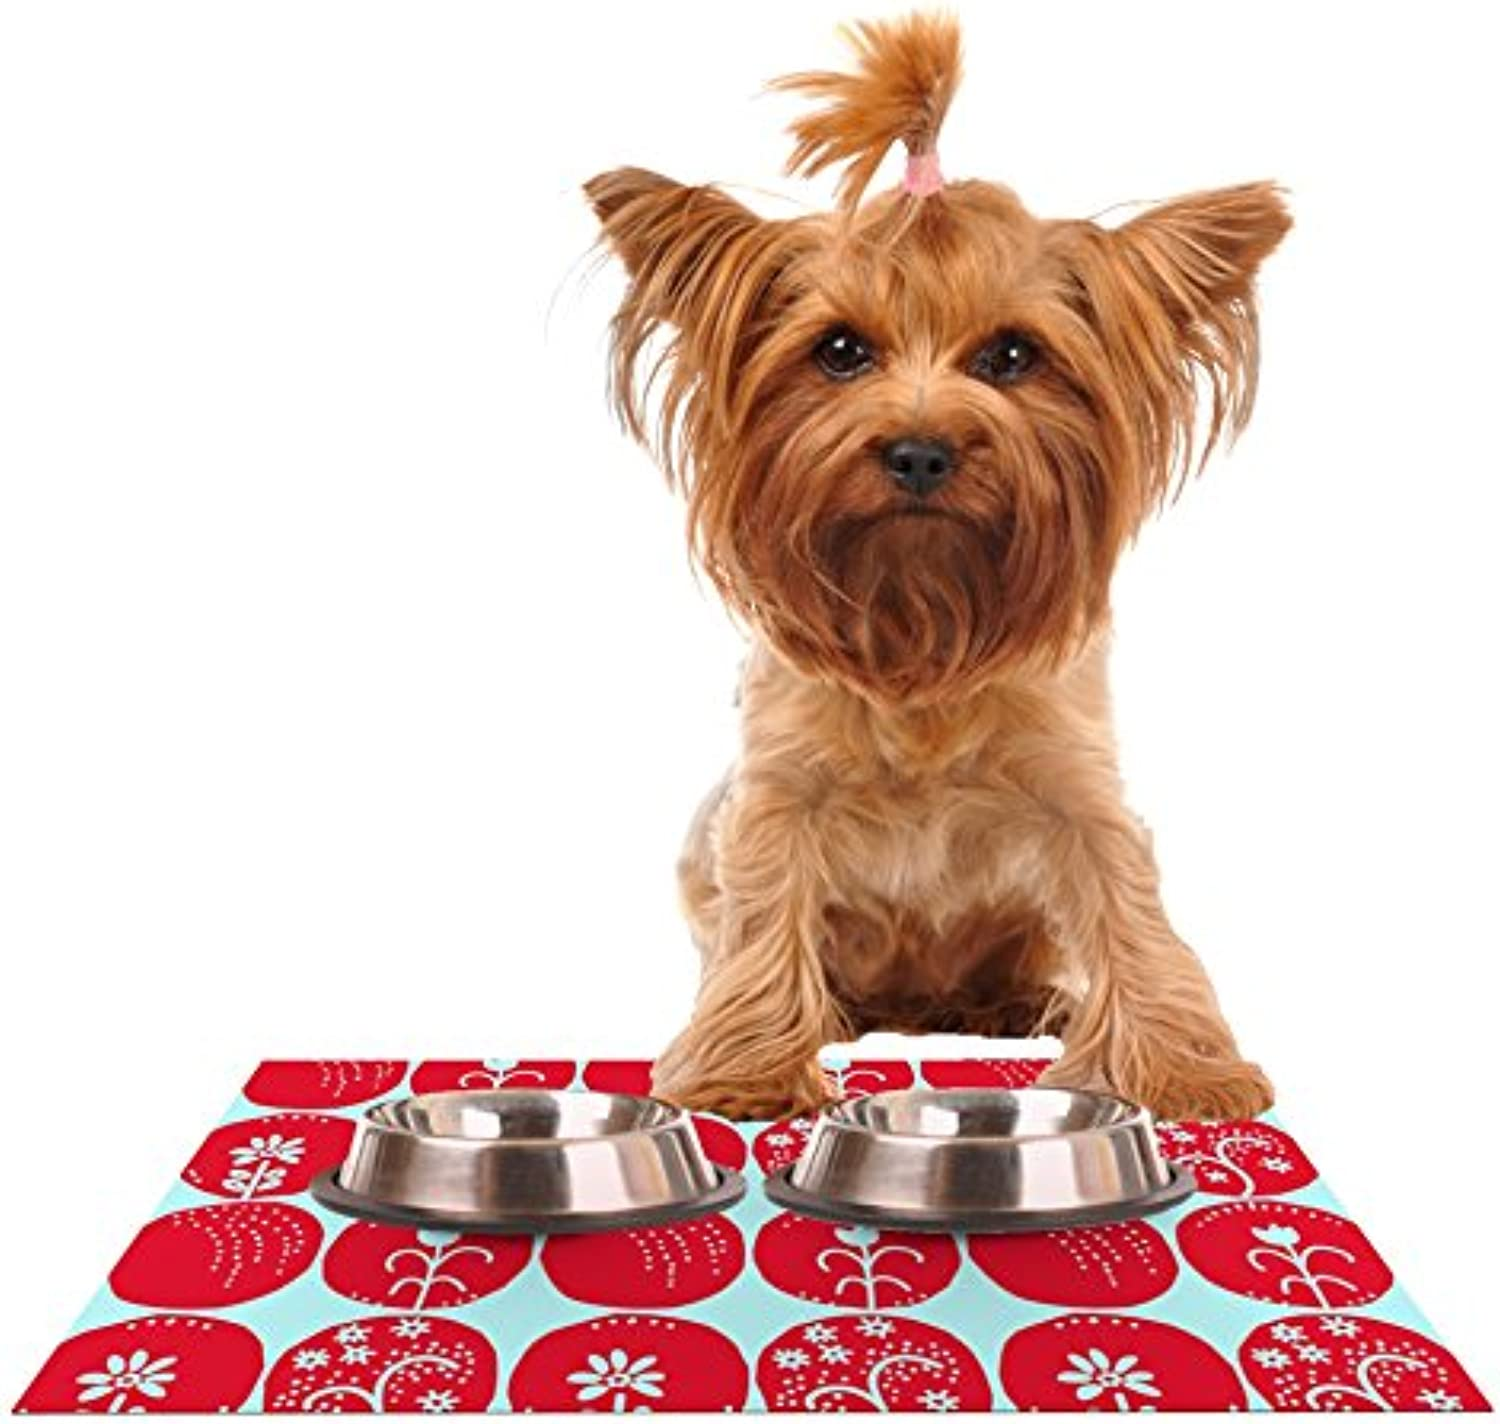 Kess InHouse Anneline Sophia Dotty Paper Cut Red  Circles bluee Feeding Mat for Pet Bowls, 24 by 15